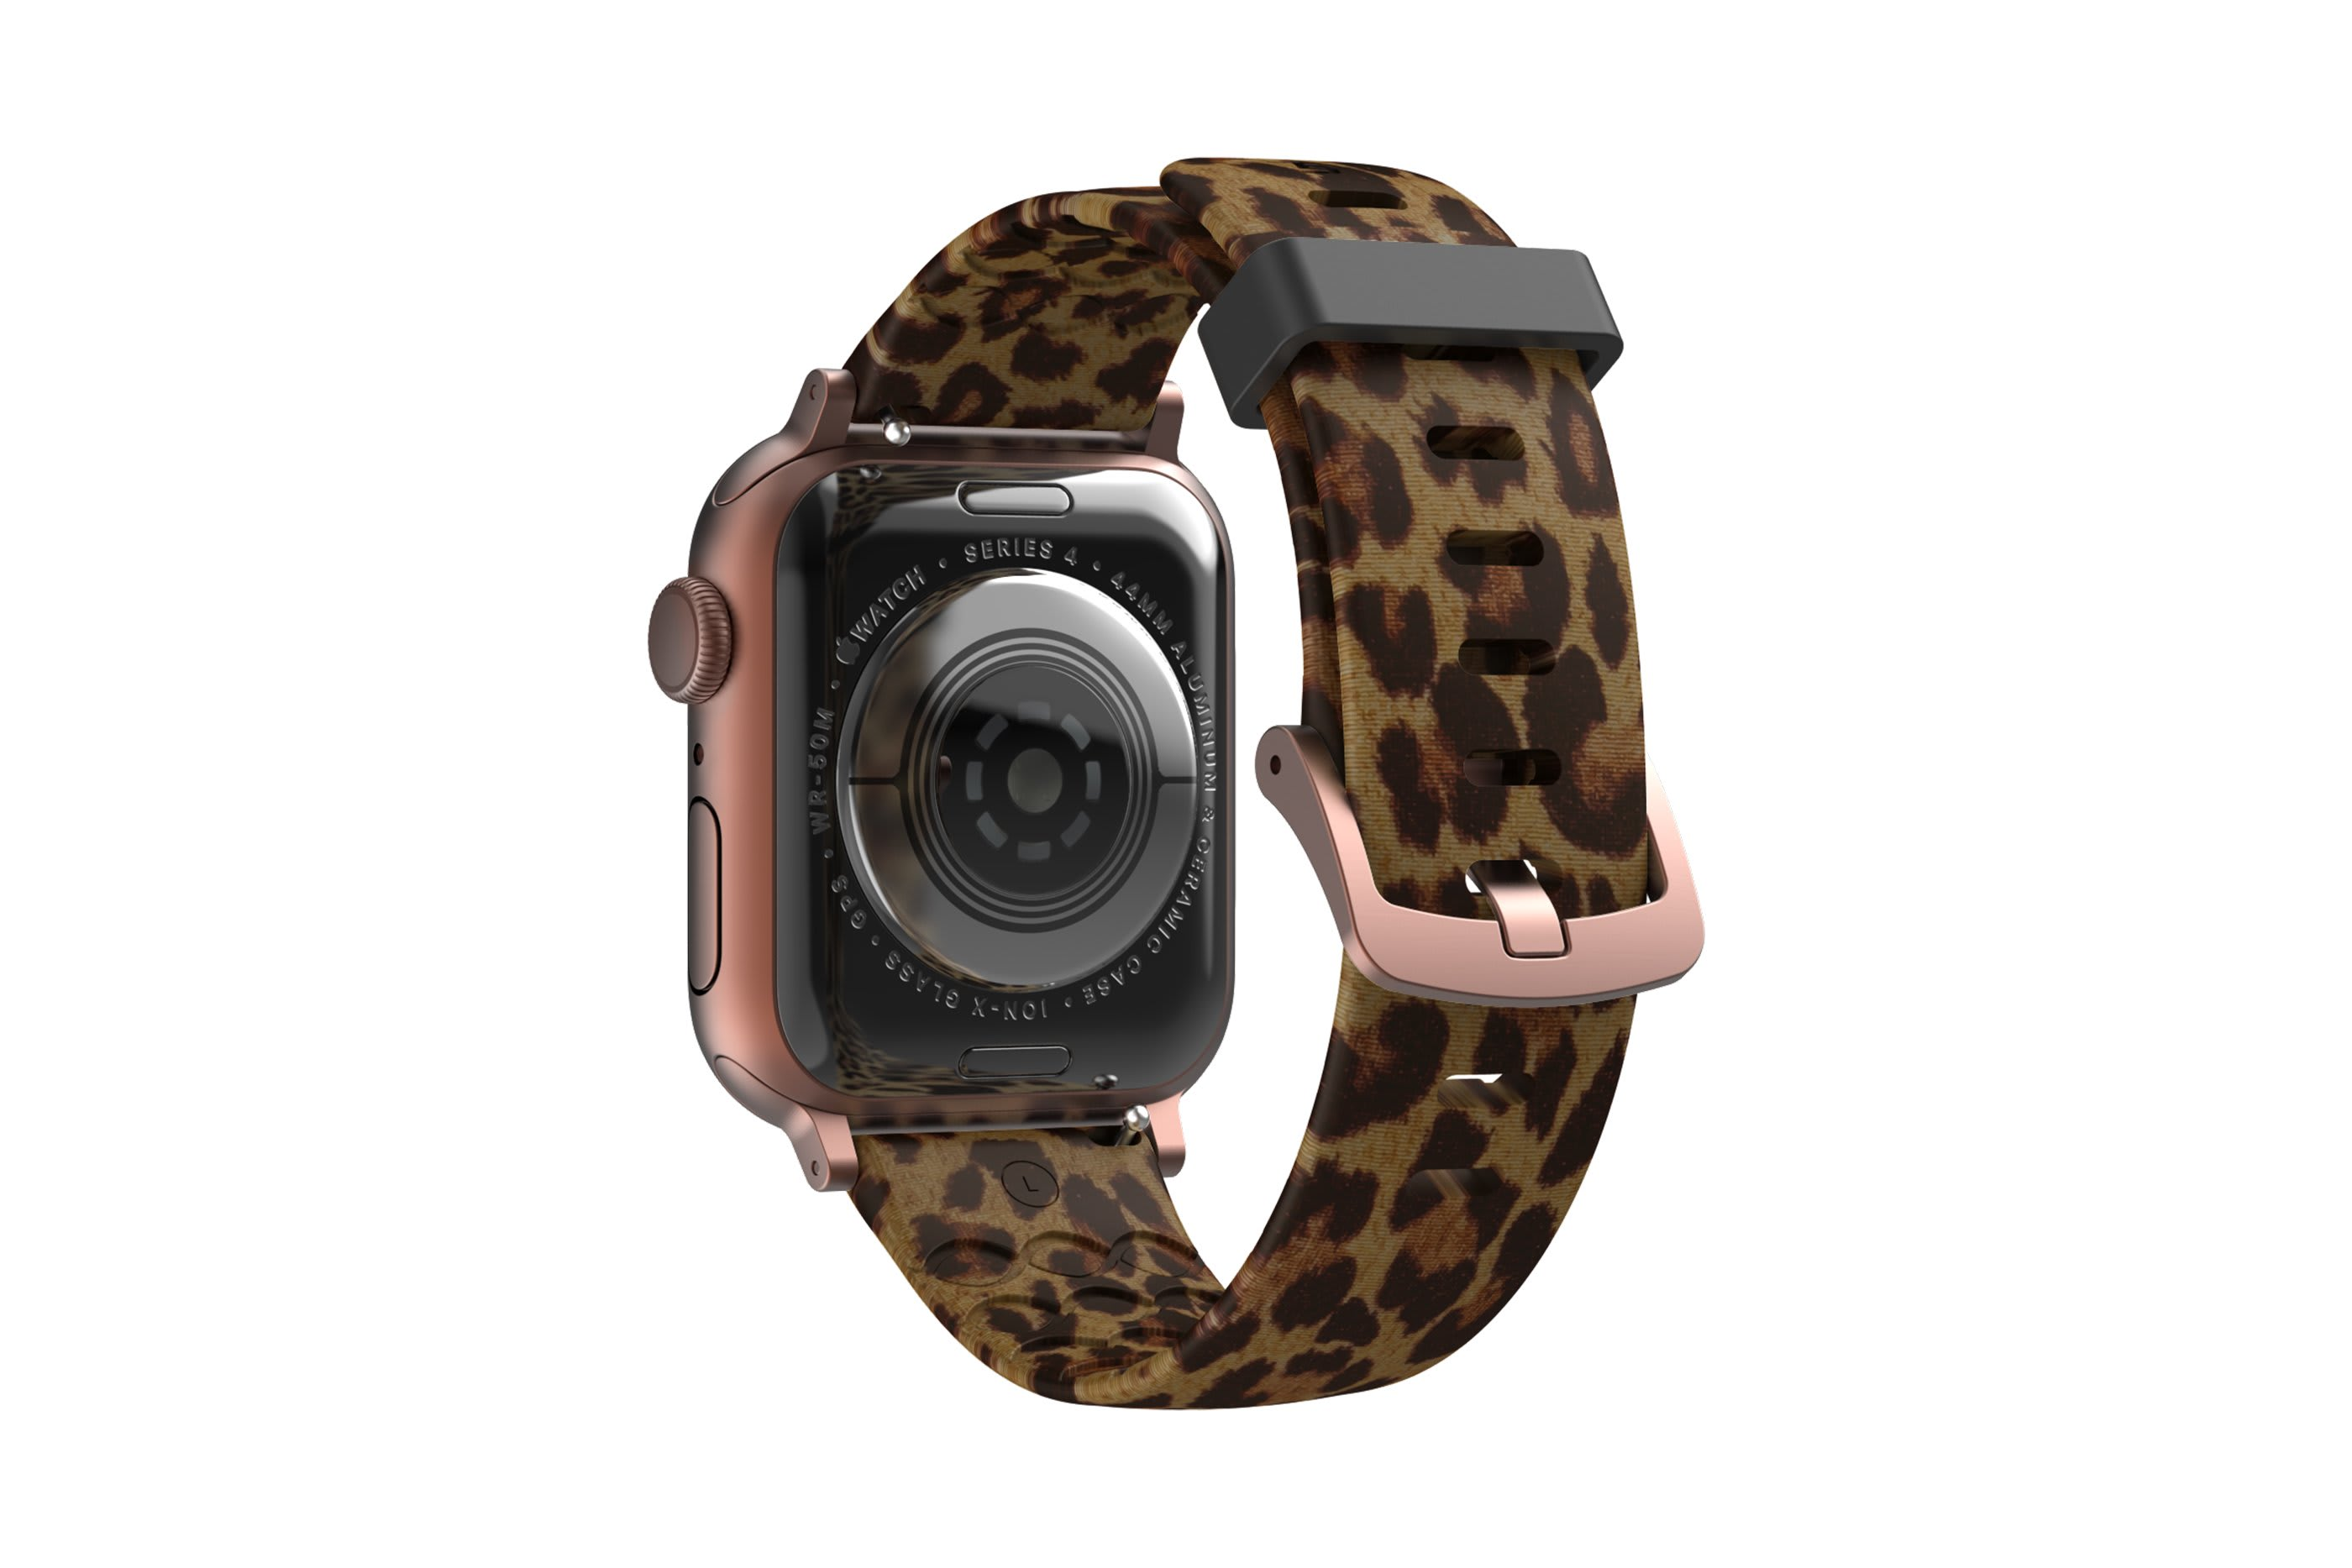 Leopard Apple Watch Band with rose gold hardware viewed from rear